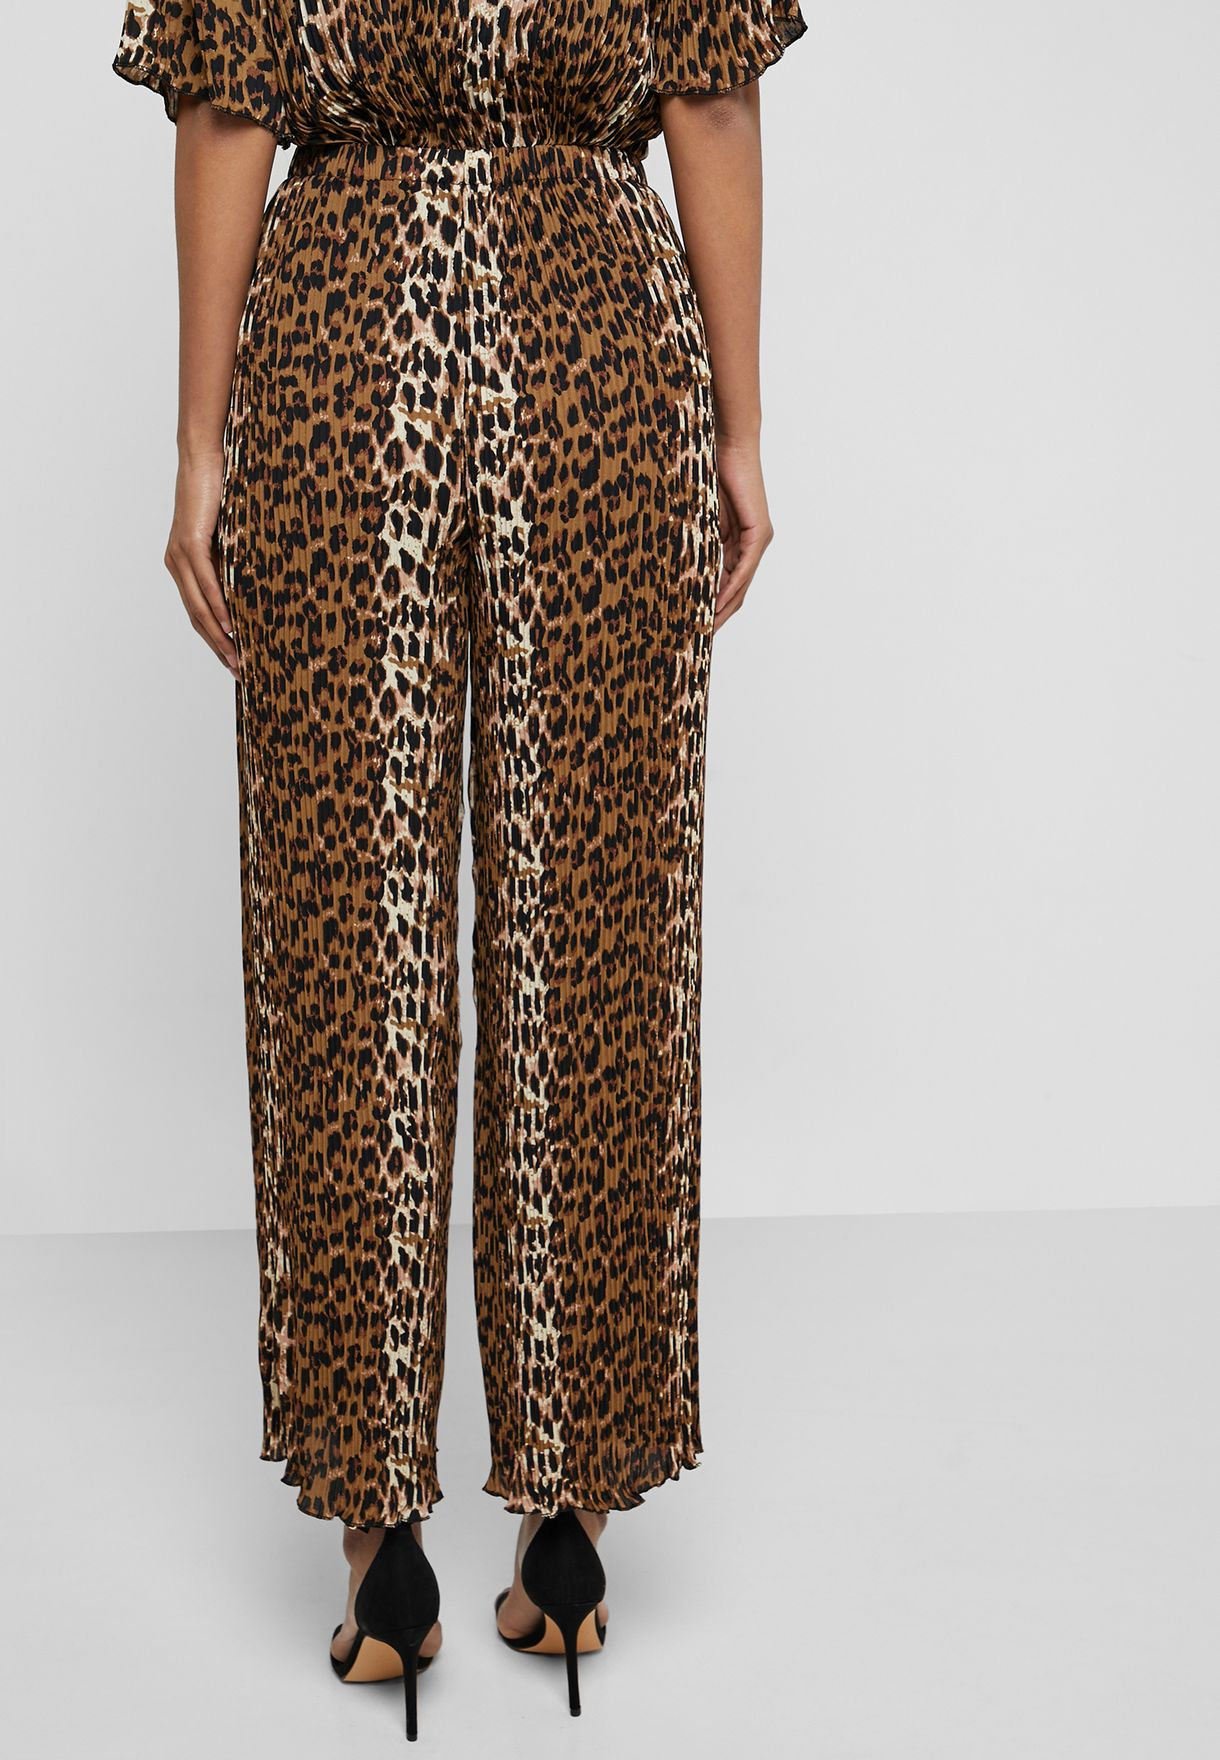 Leopard Print Plisse Pants Co Ord